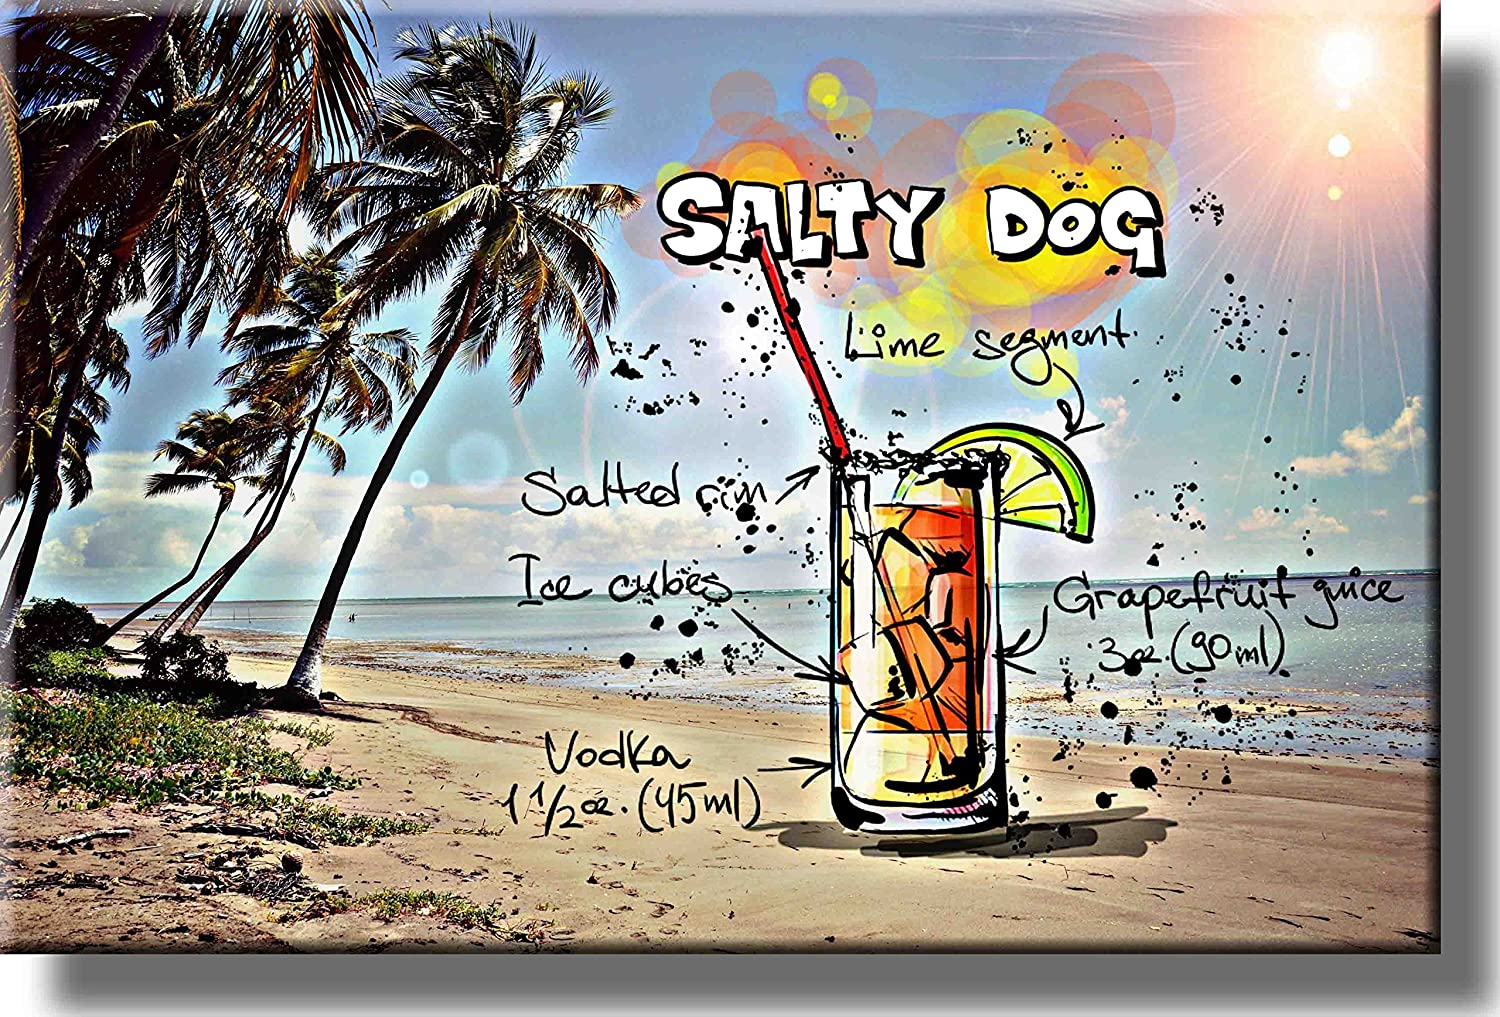 Salty Dog Cocktail Recipe Picture on Stretched Canvas, Wall Art Decor, Ready to Hang!